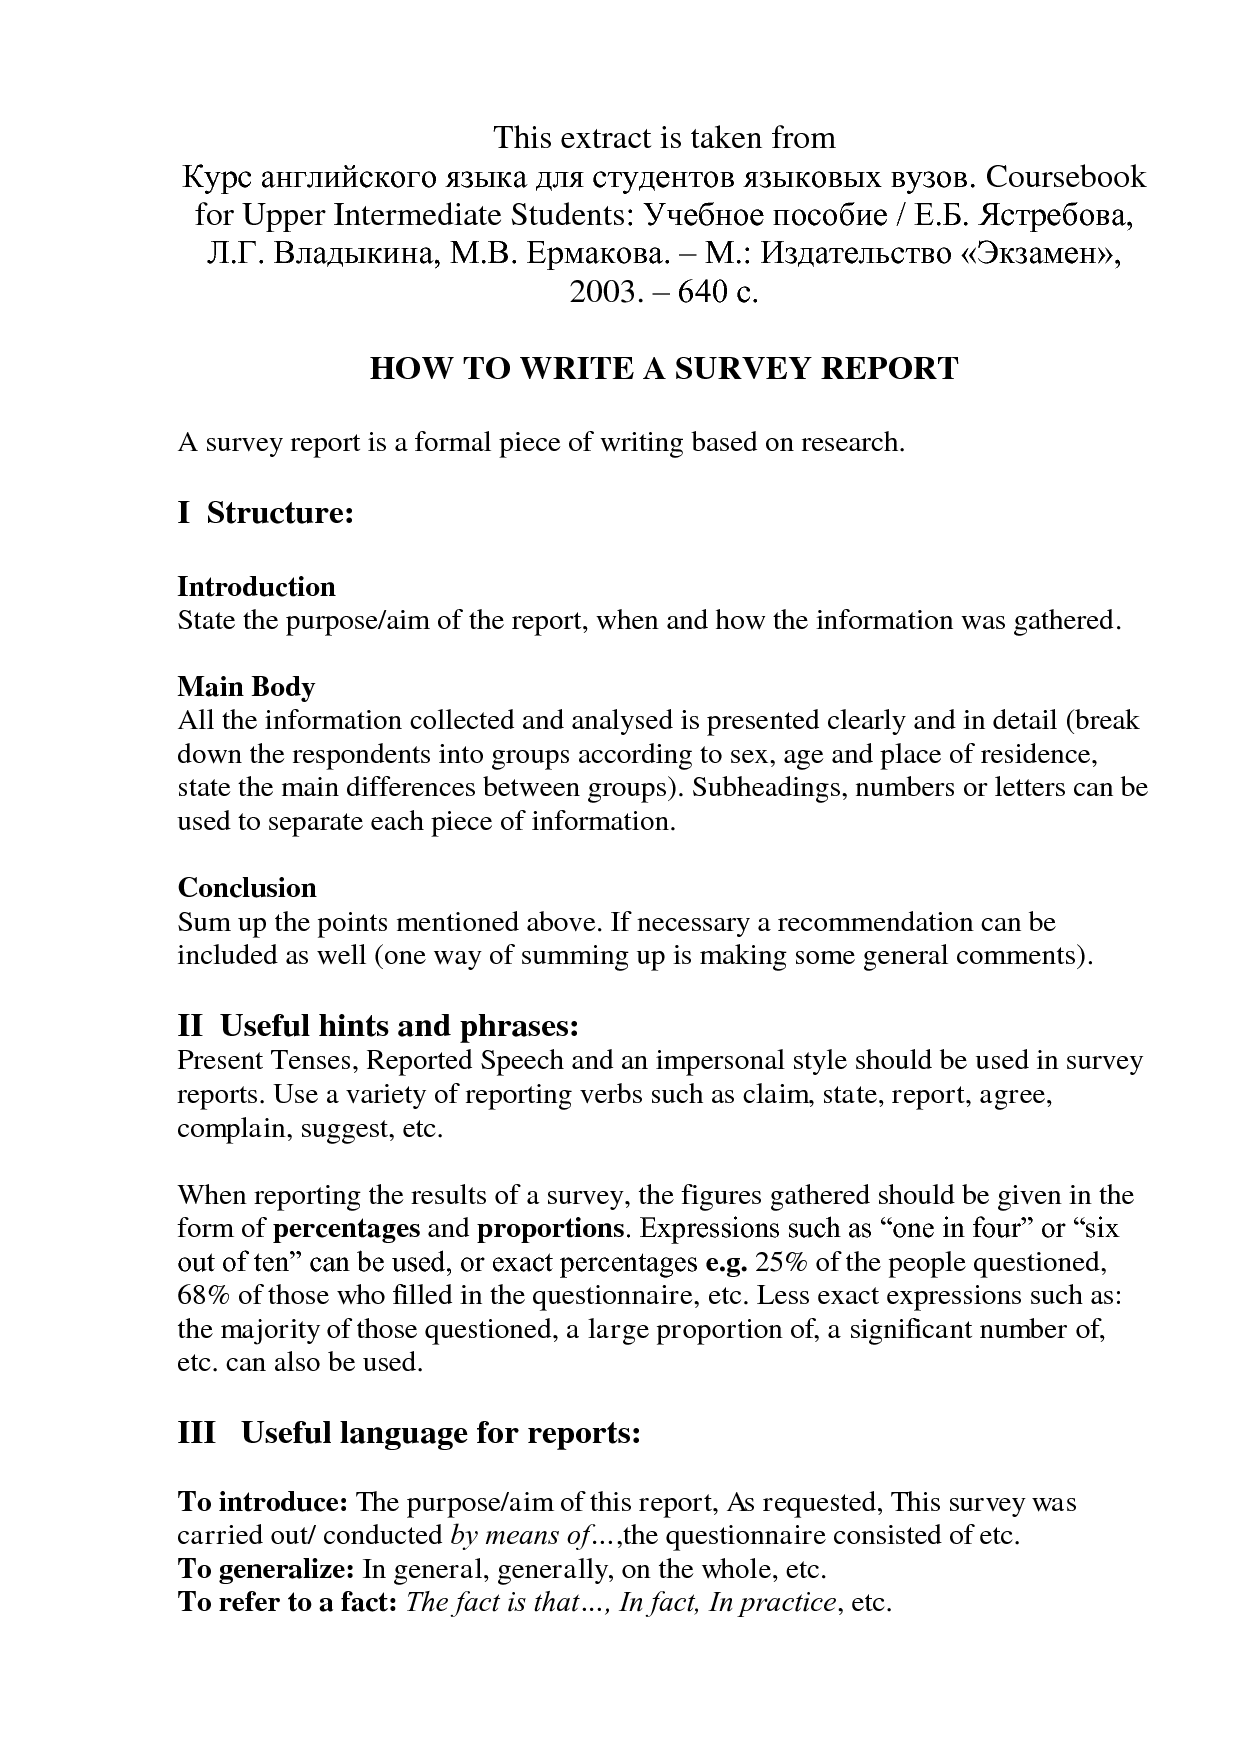 how to write a report essay example